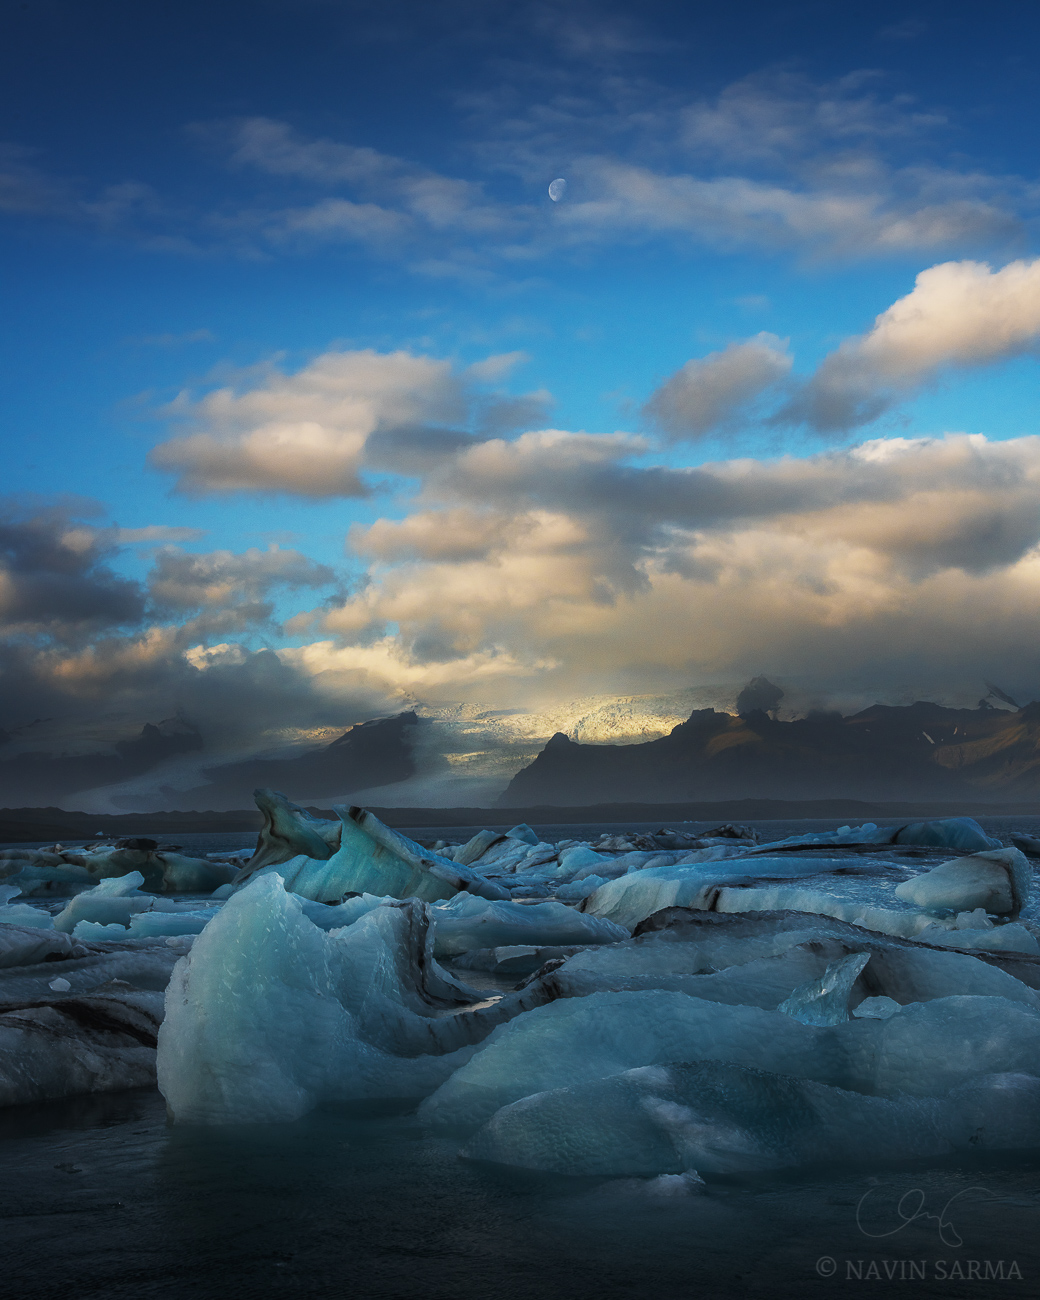 The moon peaks through clouds at sunrise at Jökulsárlón